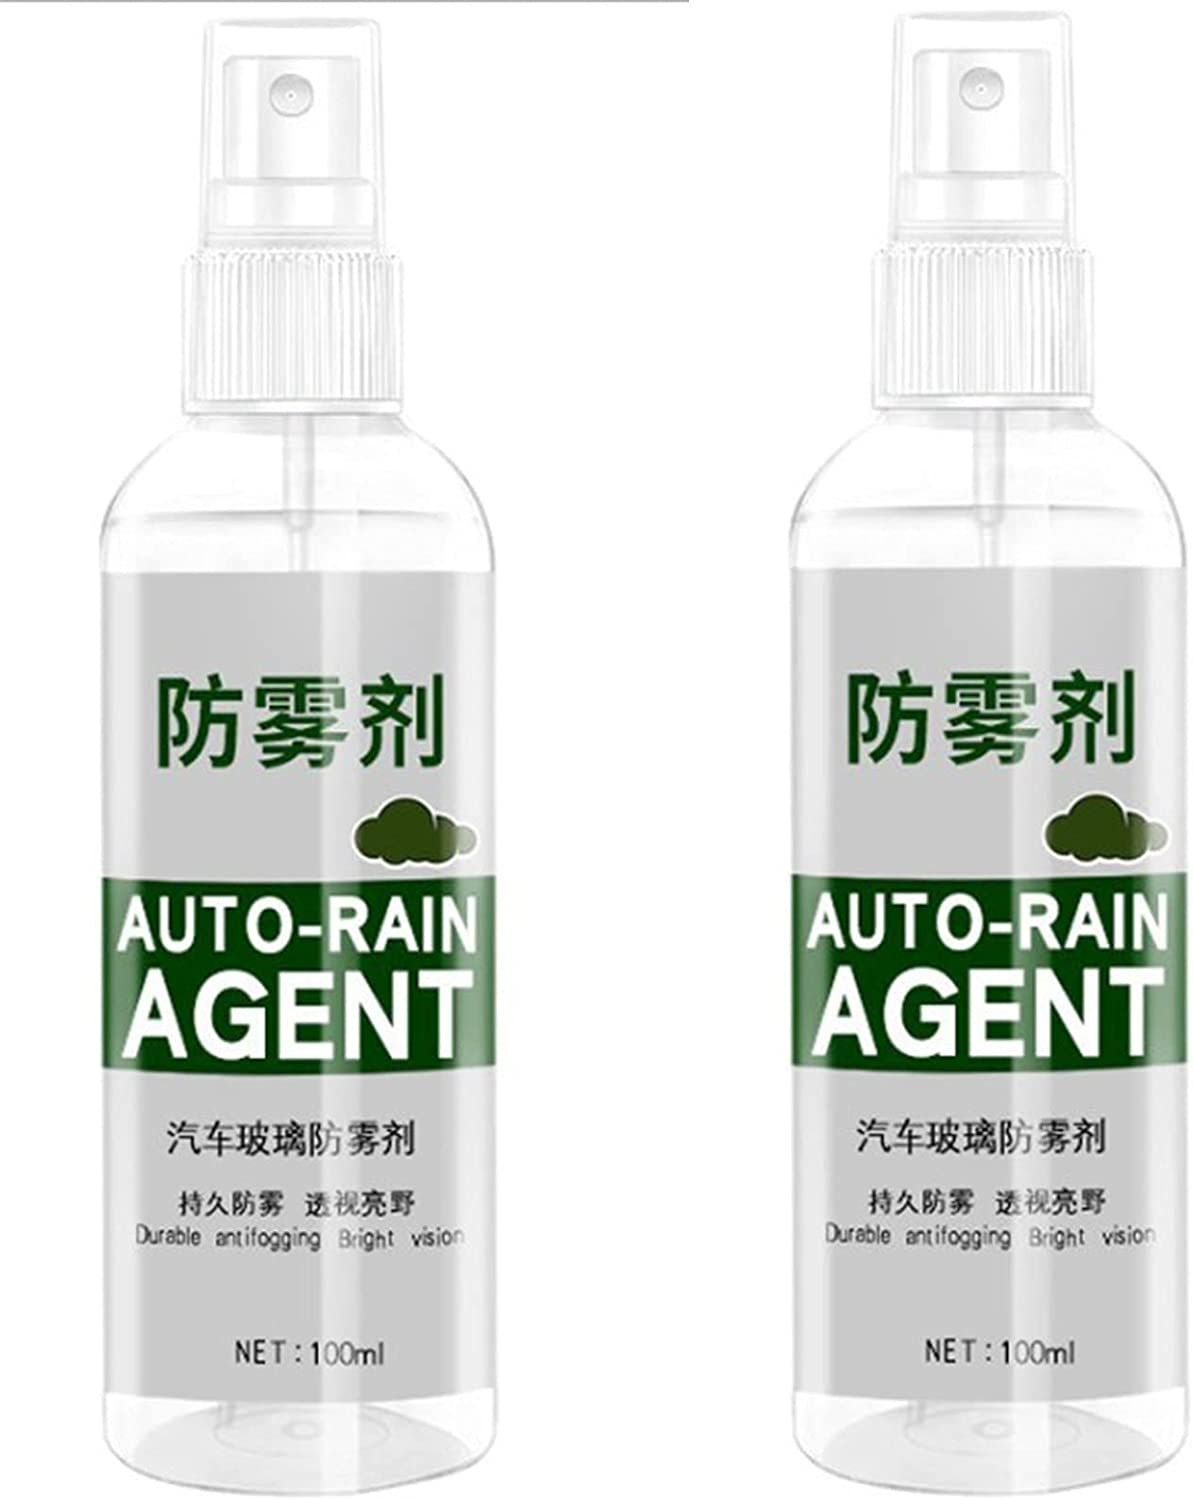 2pcs 100 ml Car Glass Coating Agent Outlet ☆ Free Shipping Max 85% OFF Waterproof Coatin